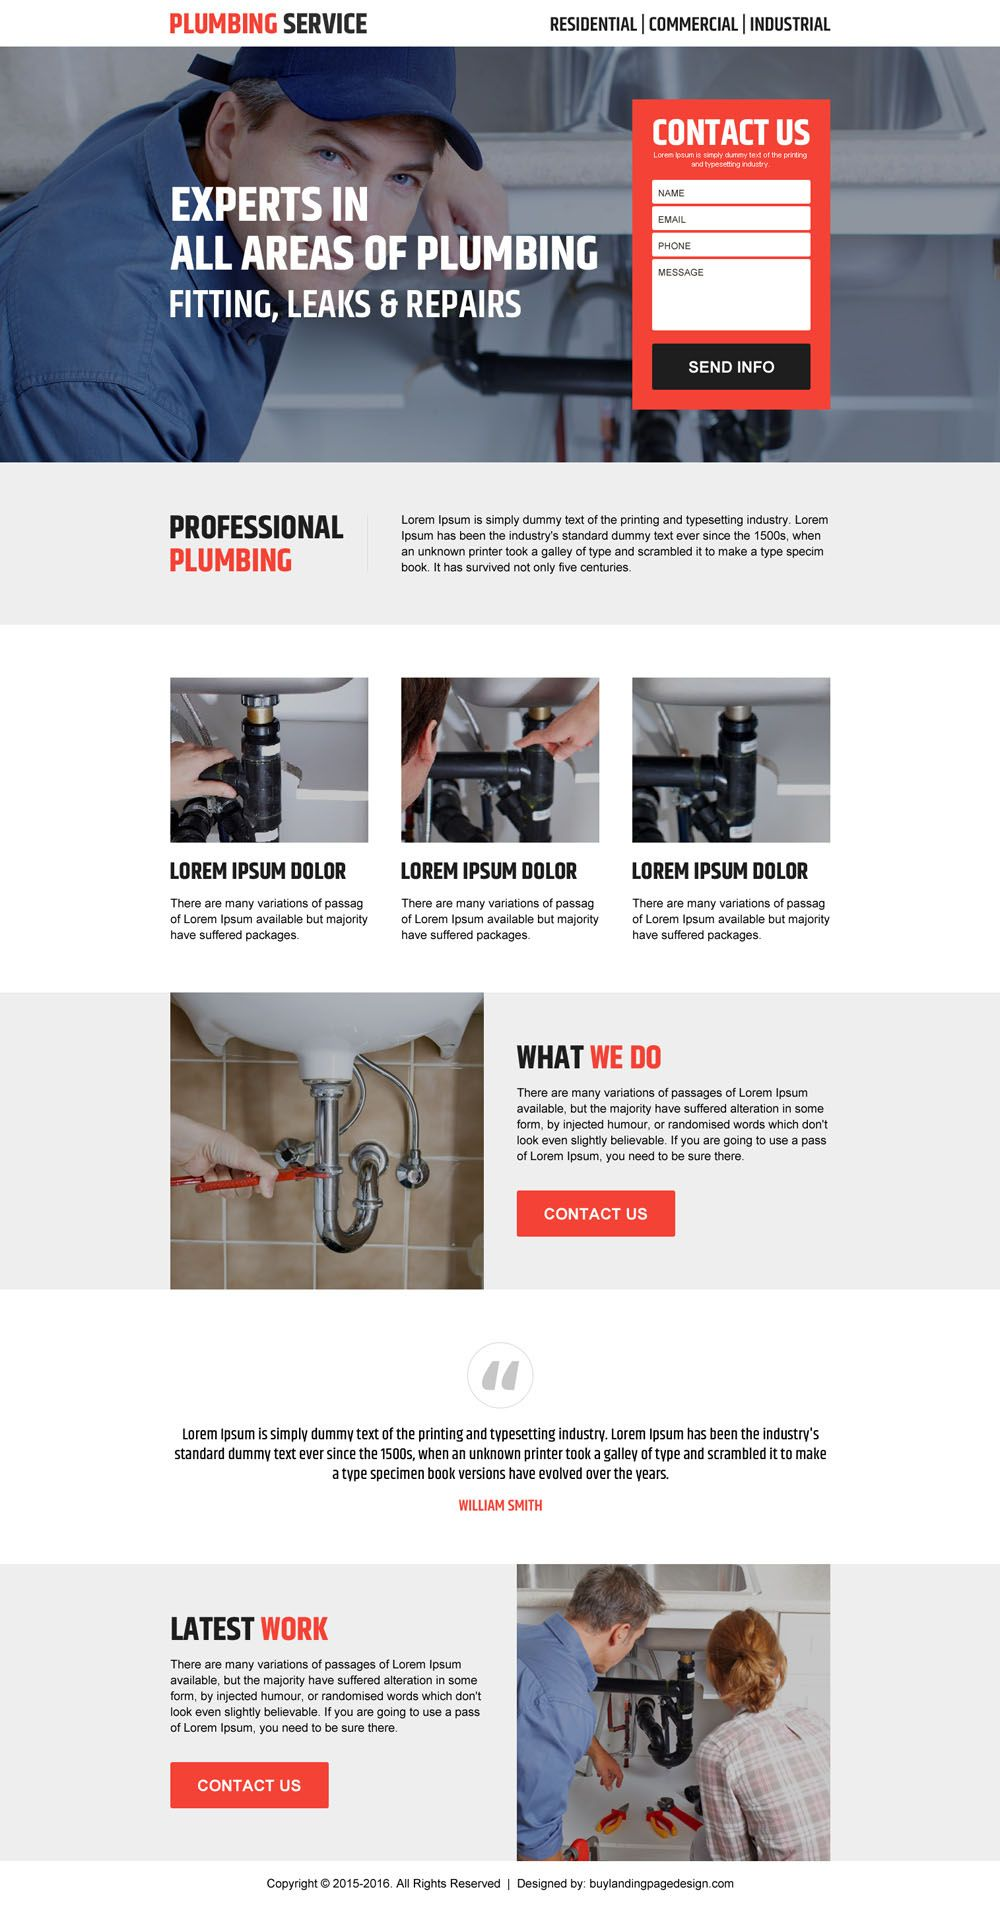 9 Best Landing Pages To Promote Your Plumbing Service Online Best Landing Pages Landing Page Best Landing Page Design